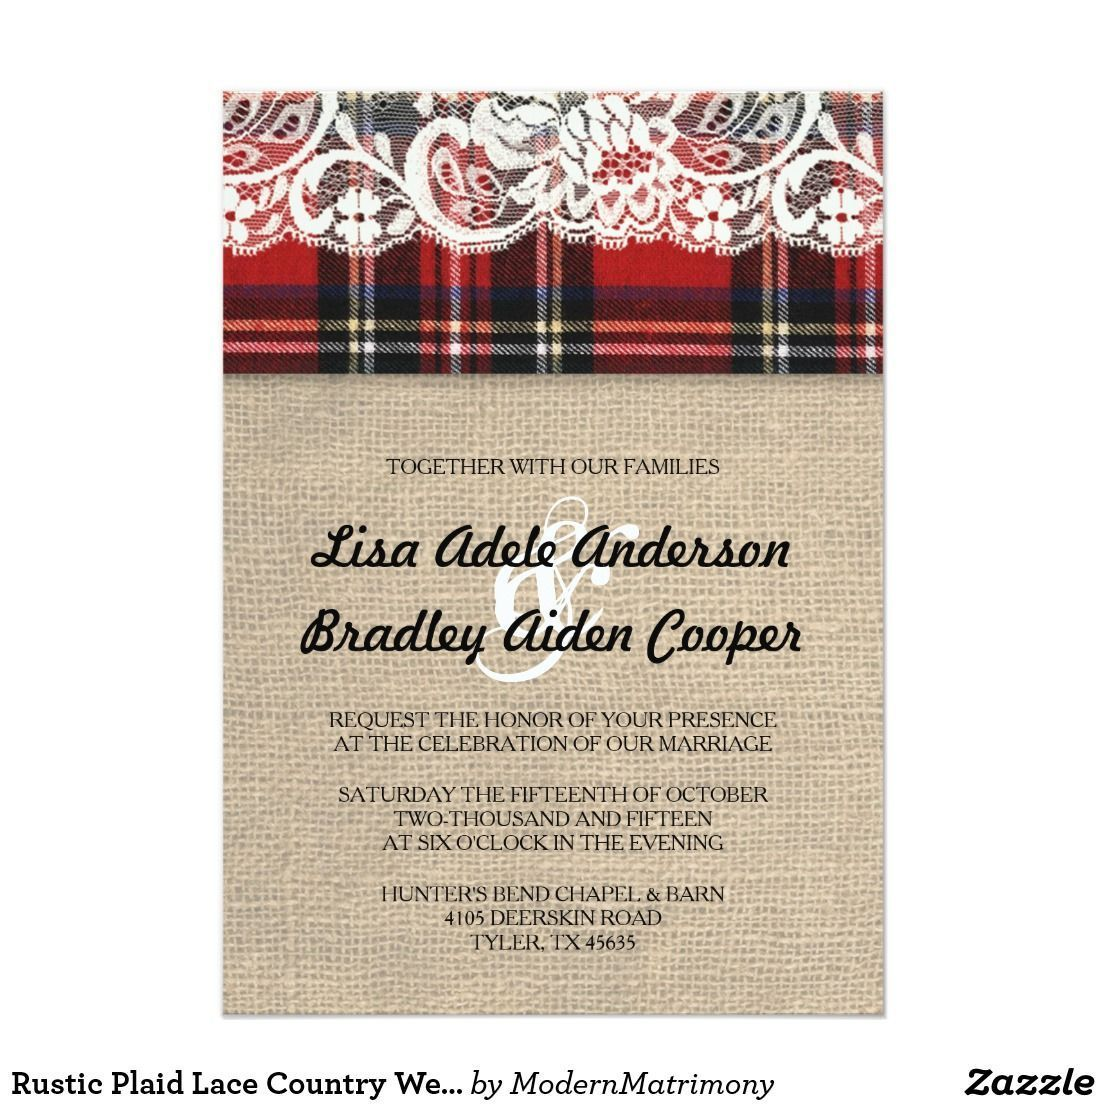 Small Ceremony Big Reception Invitations: Rustic Plaid Lace Country Wedding Invitation